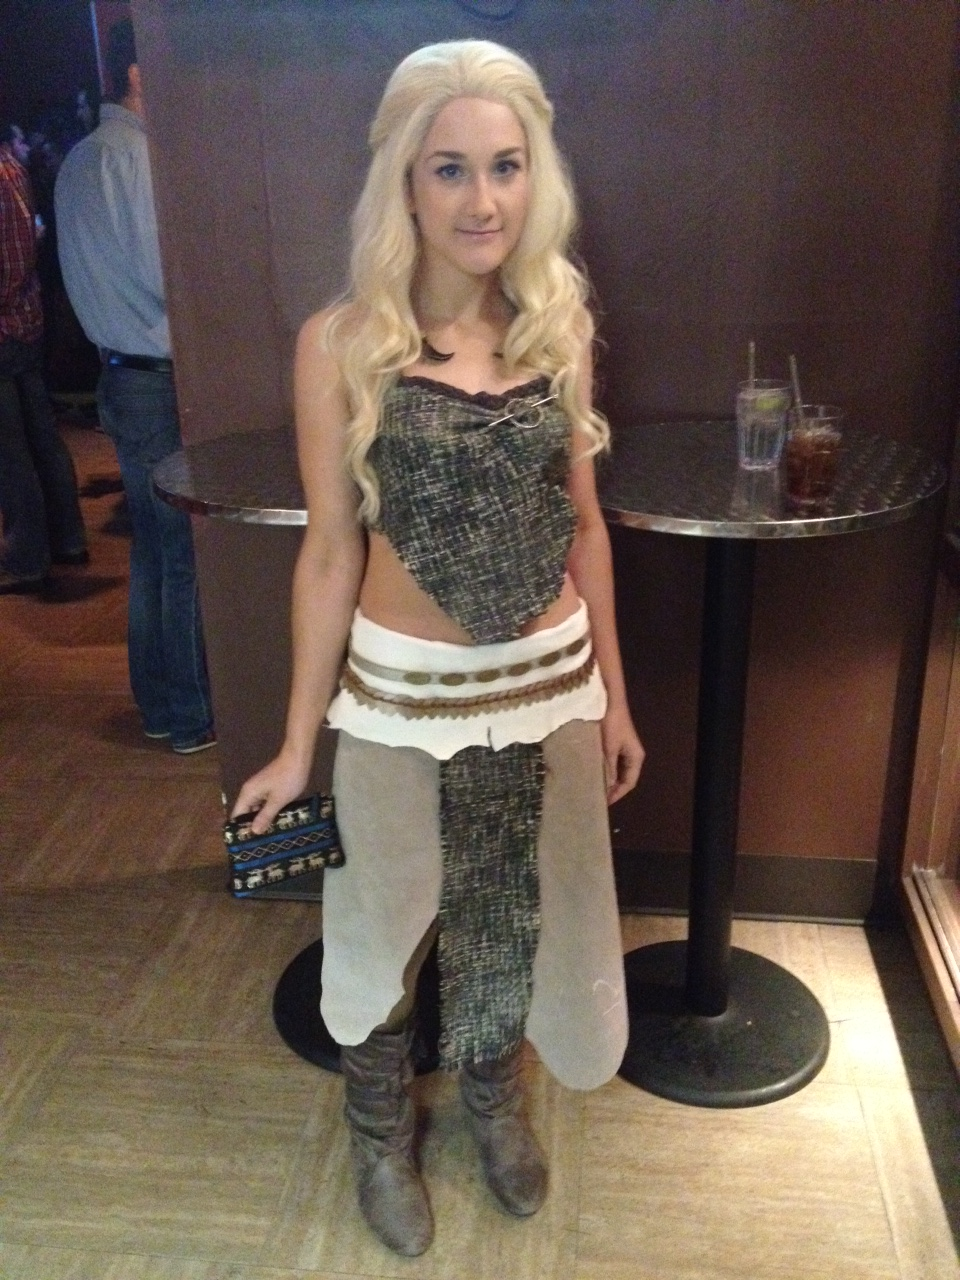 Daenerys Targaryen / Khaleesi from Game of Thrones Costume ...